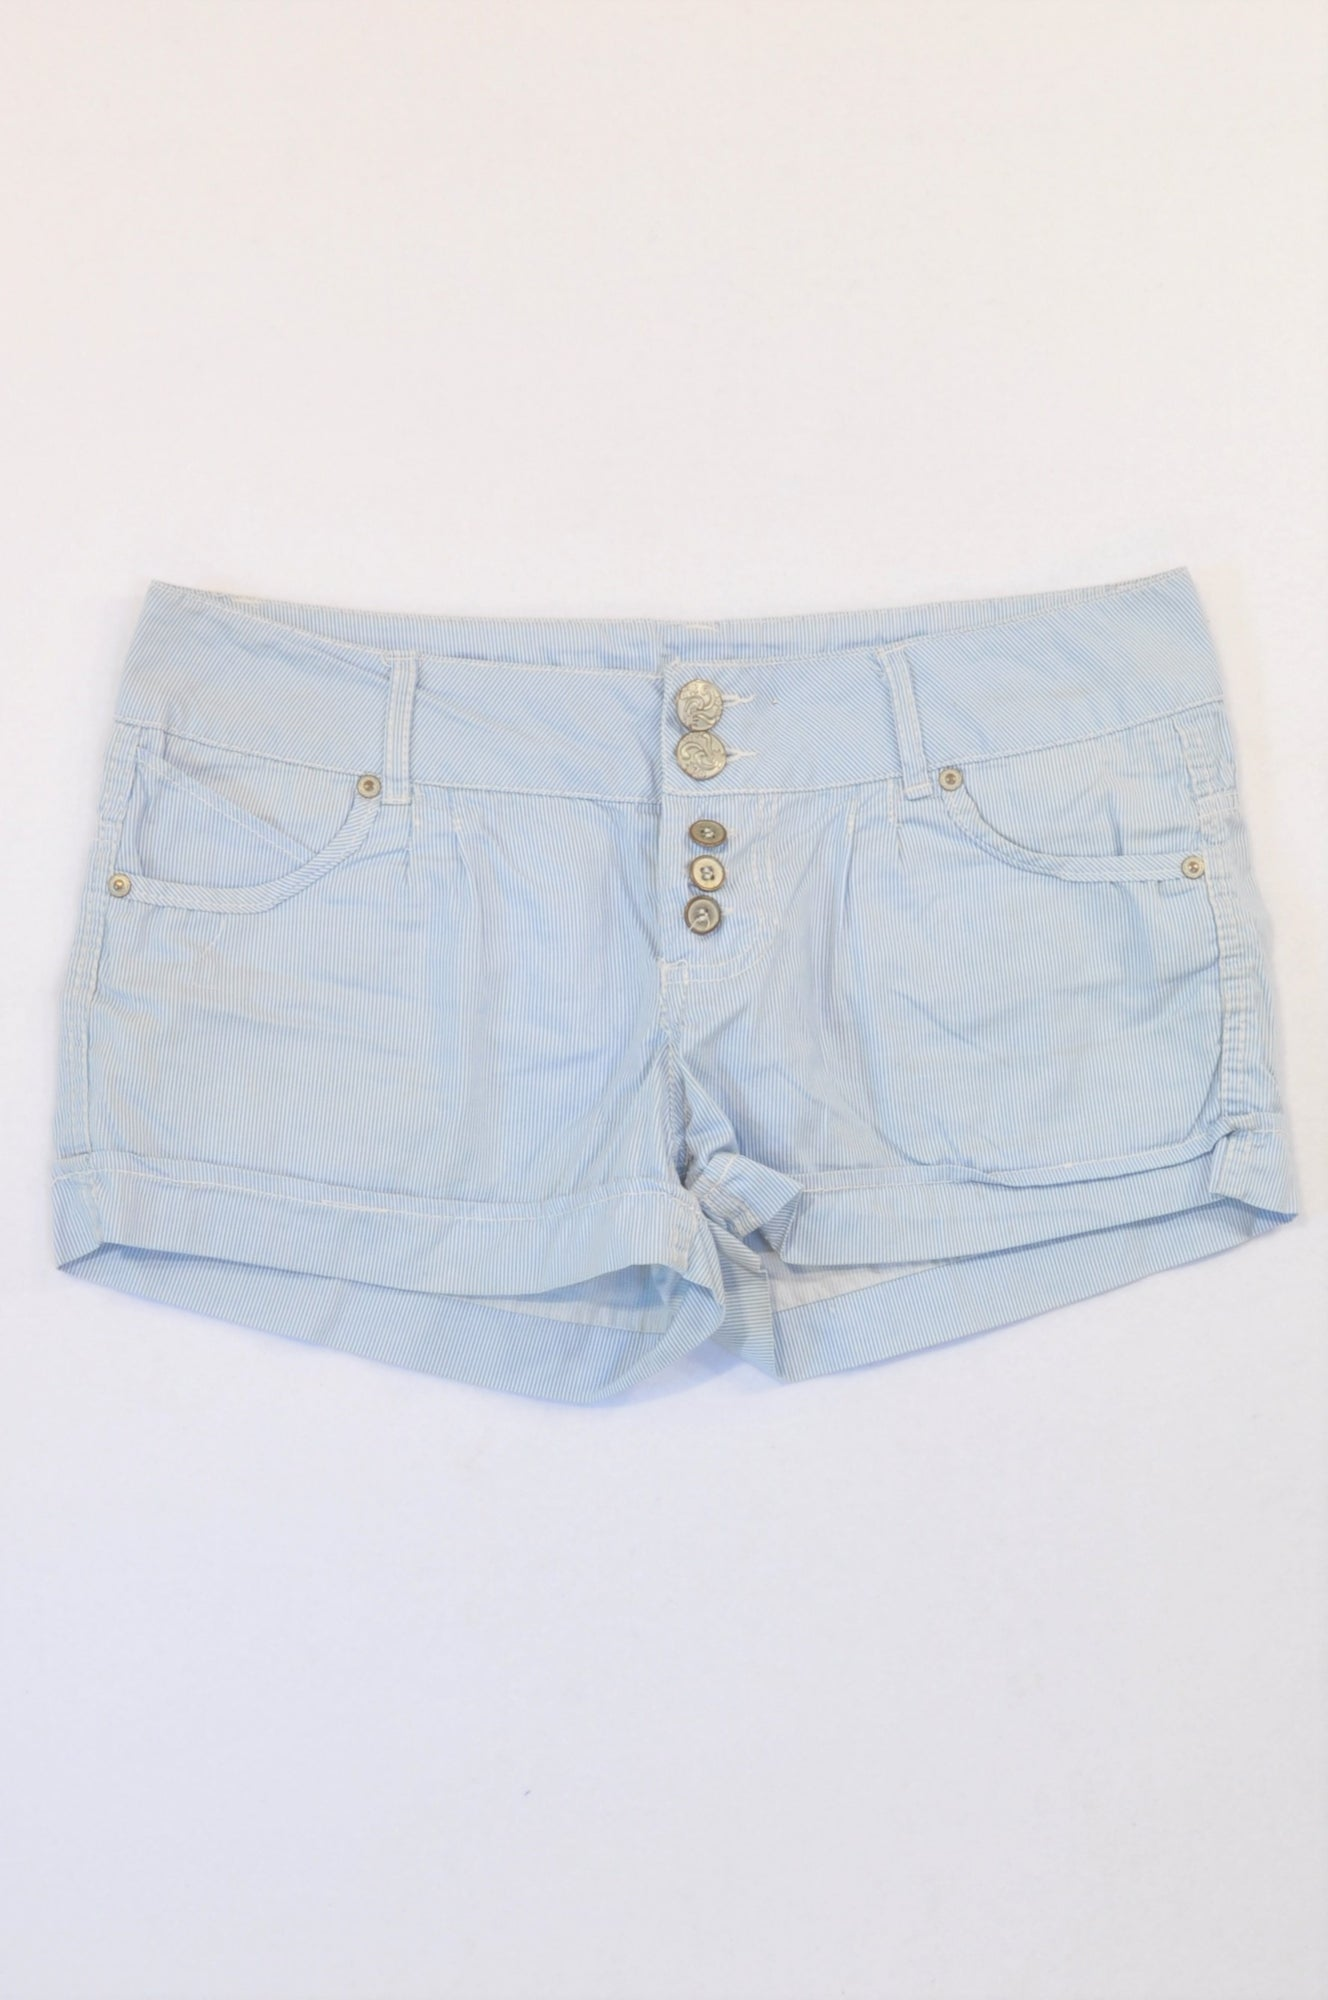 Mr. Price Blue Thin Pinstripe Roll Up Shorts Women Size 34